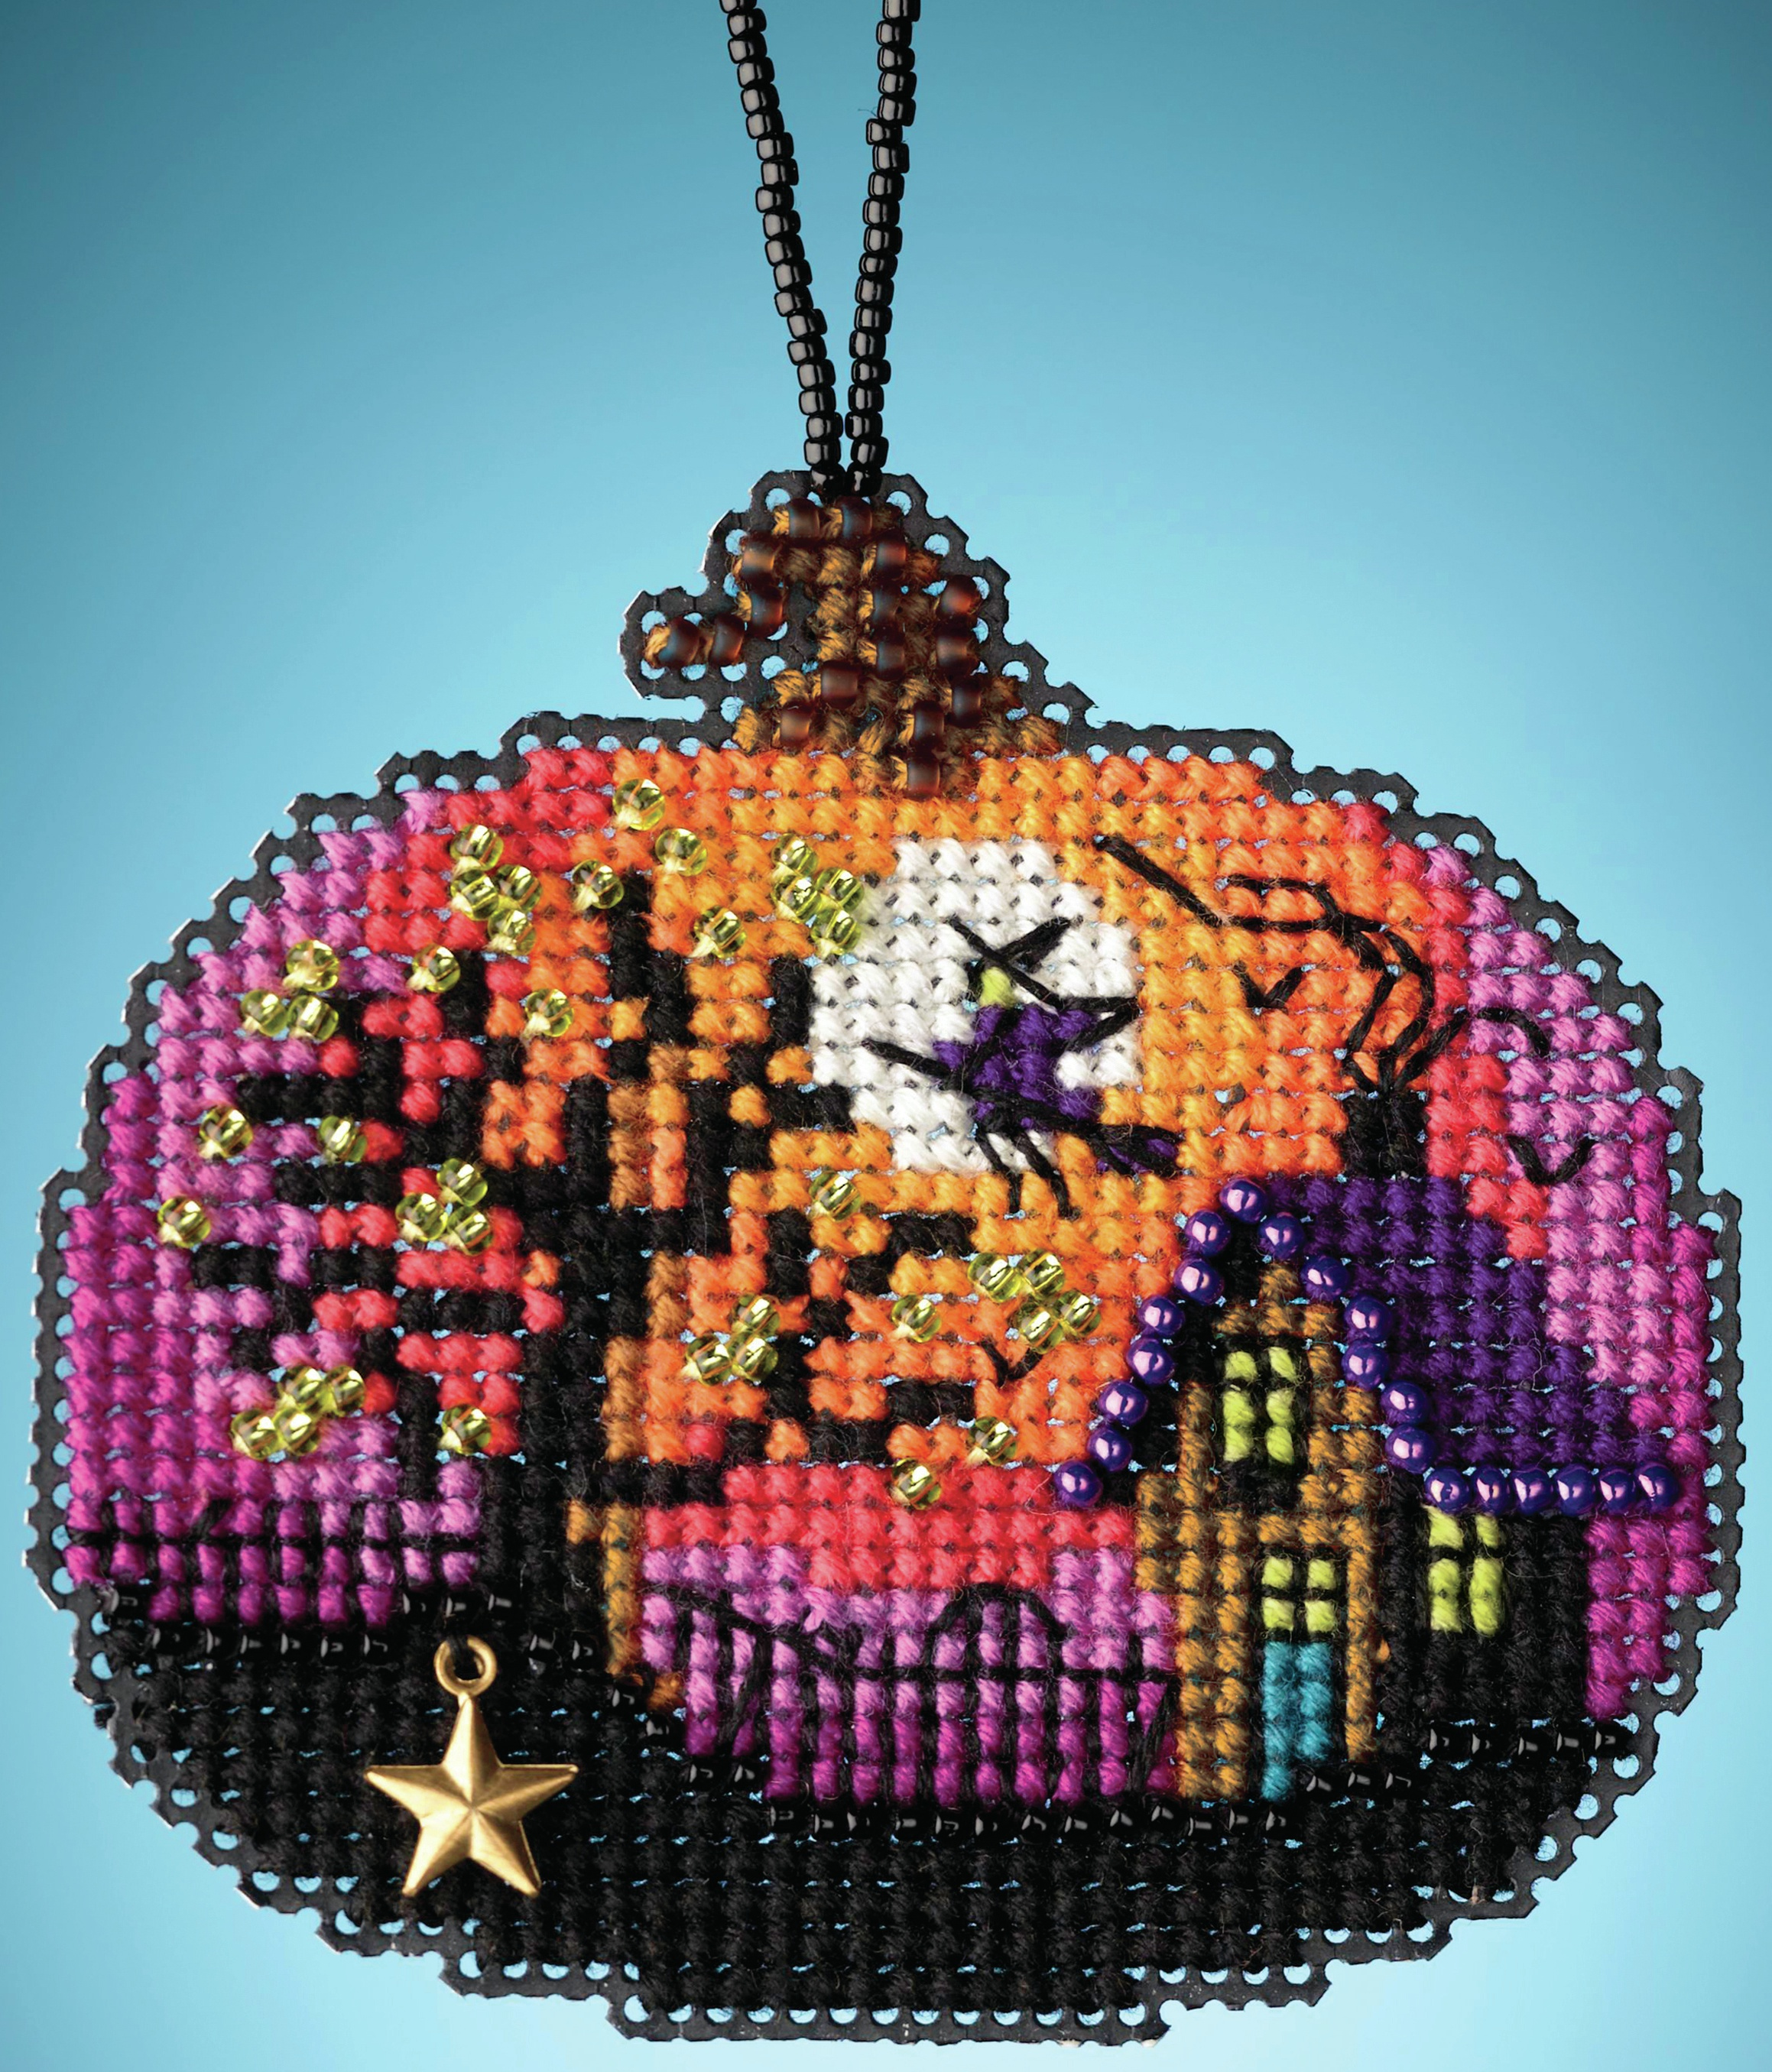 Bewitching Pumpkin counted cross stitch kit